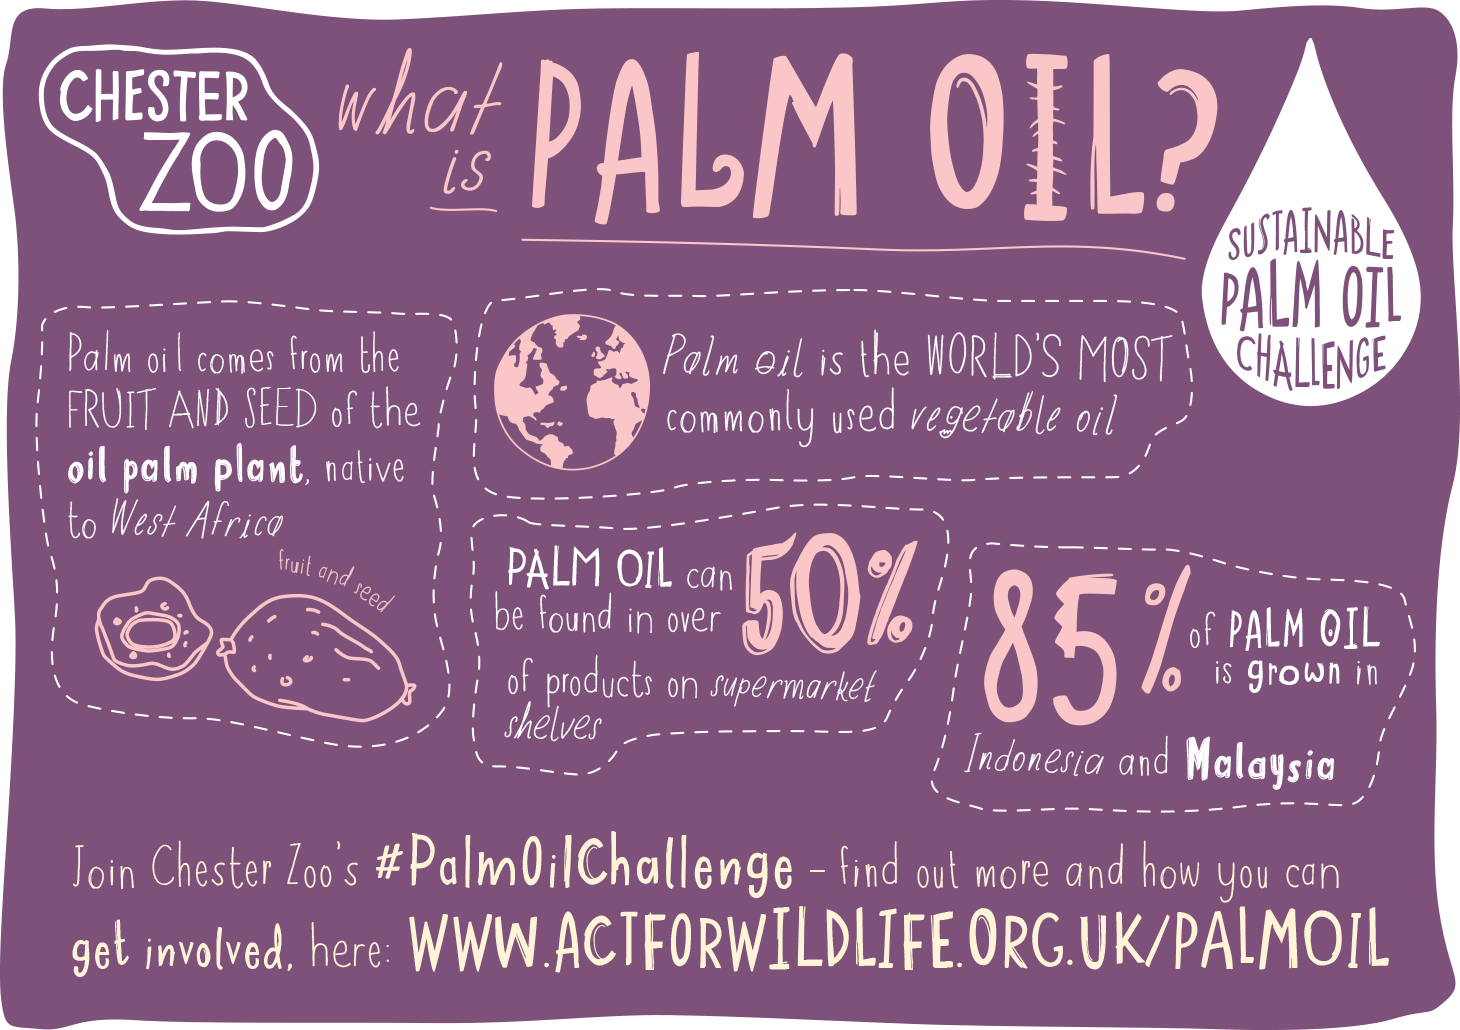 Museums and the sustainable palm oil challenge